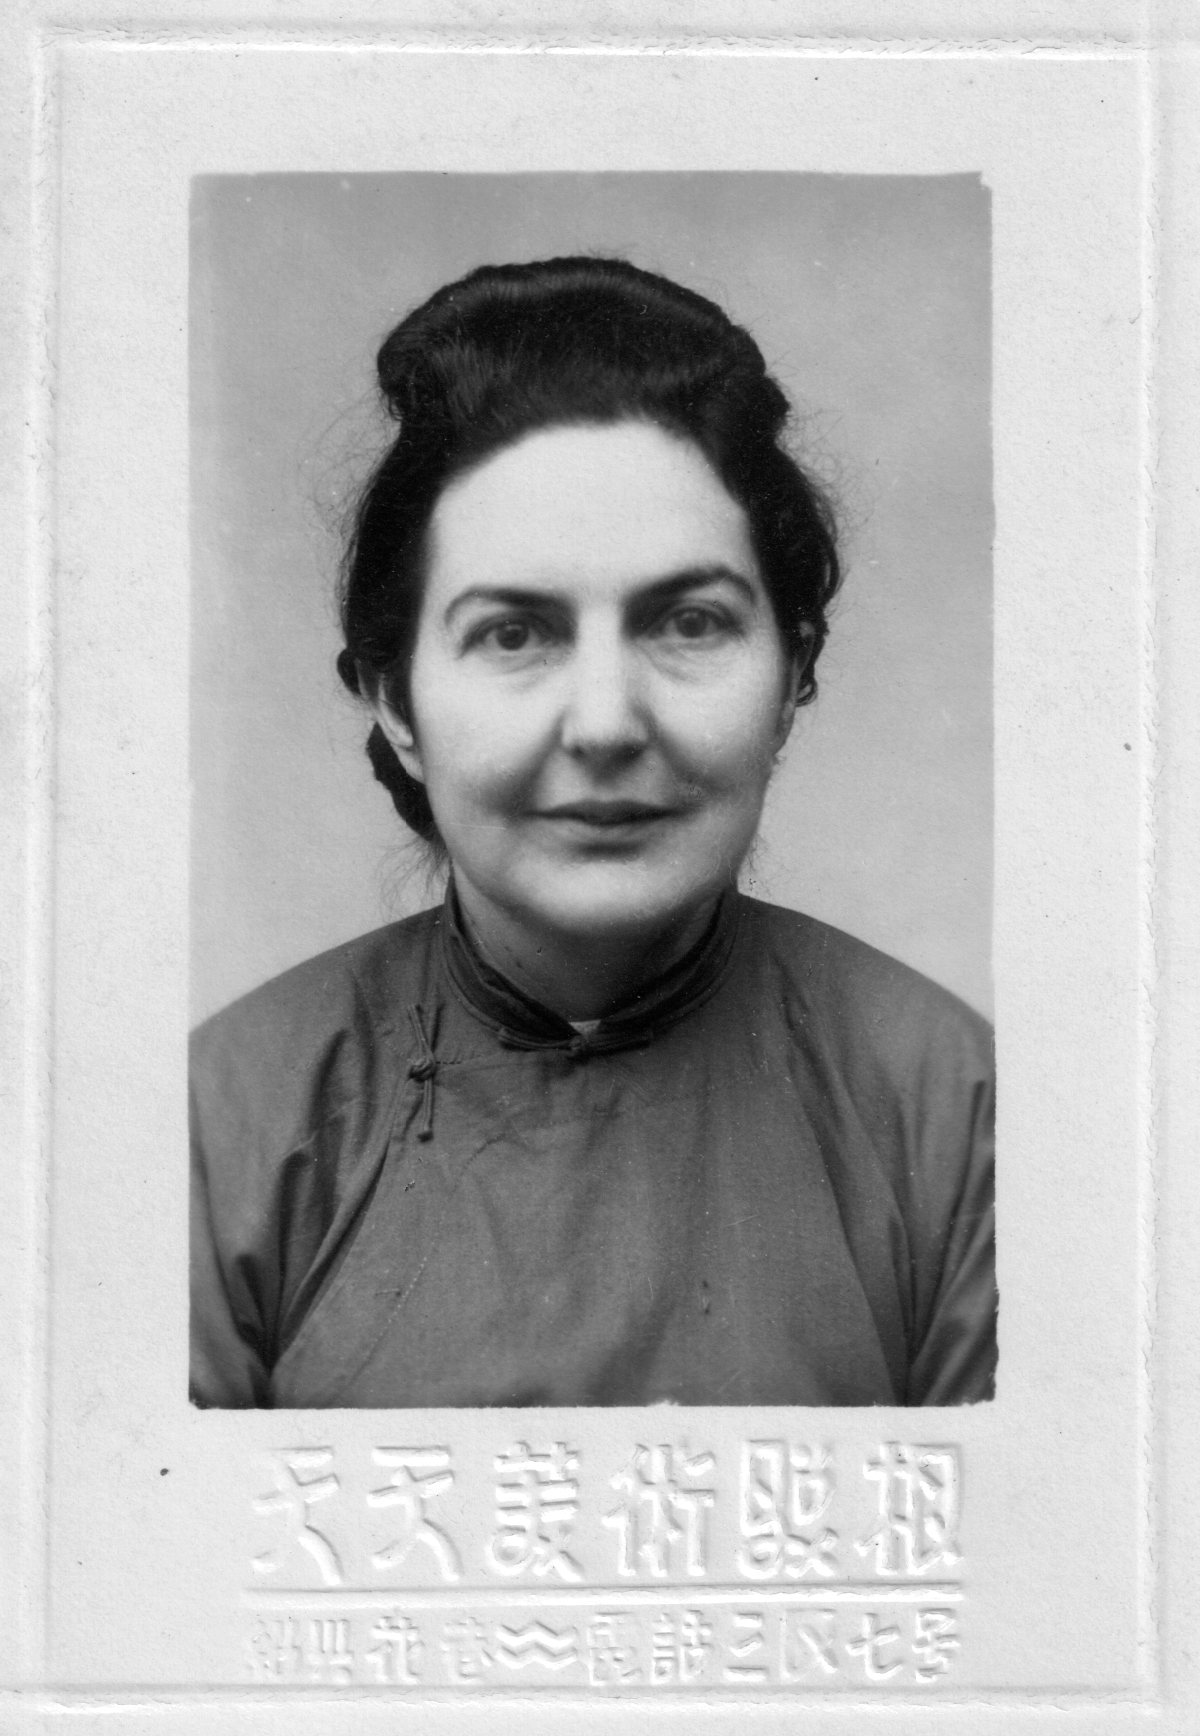 Deaconess Mary Andrews